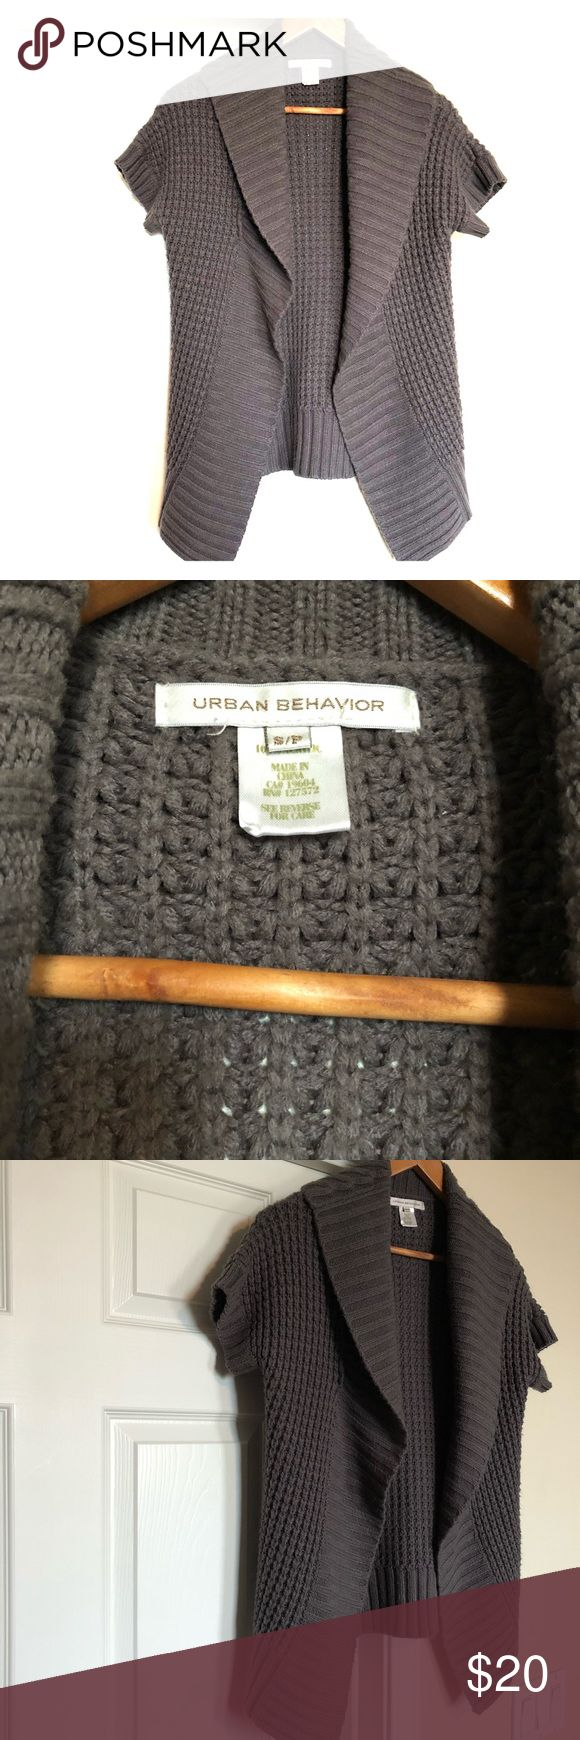 Gray short sleeve Urban Behavior sweater This sweater is very comfortable and can be worn so many ways. It can be worn with a belt around the waist, left open with a tank underneath, worn over a dress, with a tunic and tights and boots. So many options!   This sweater is in great condition! I do accept reasonable offers! I would be happy to answer any questions you may have! Urban Behavior Sweaters